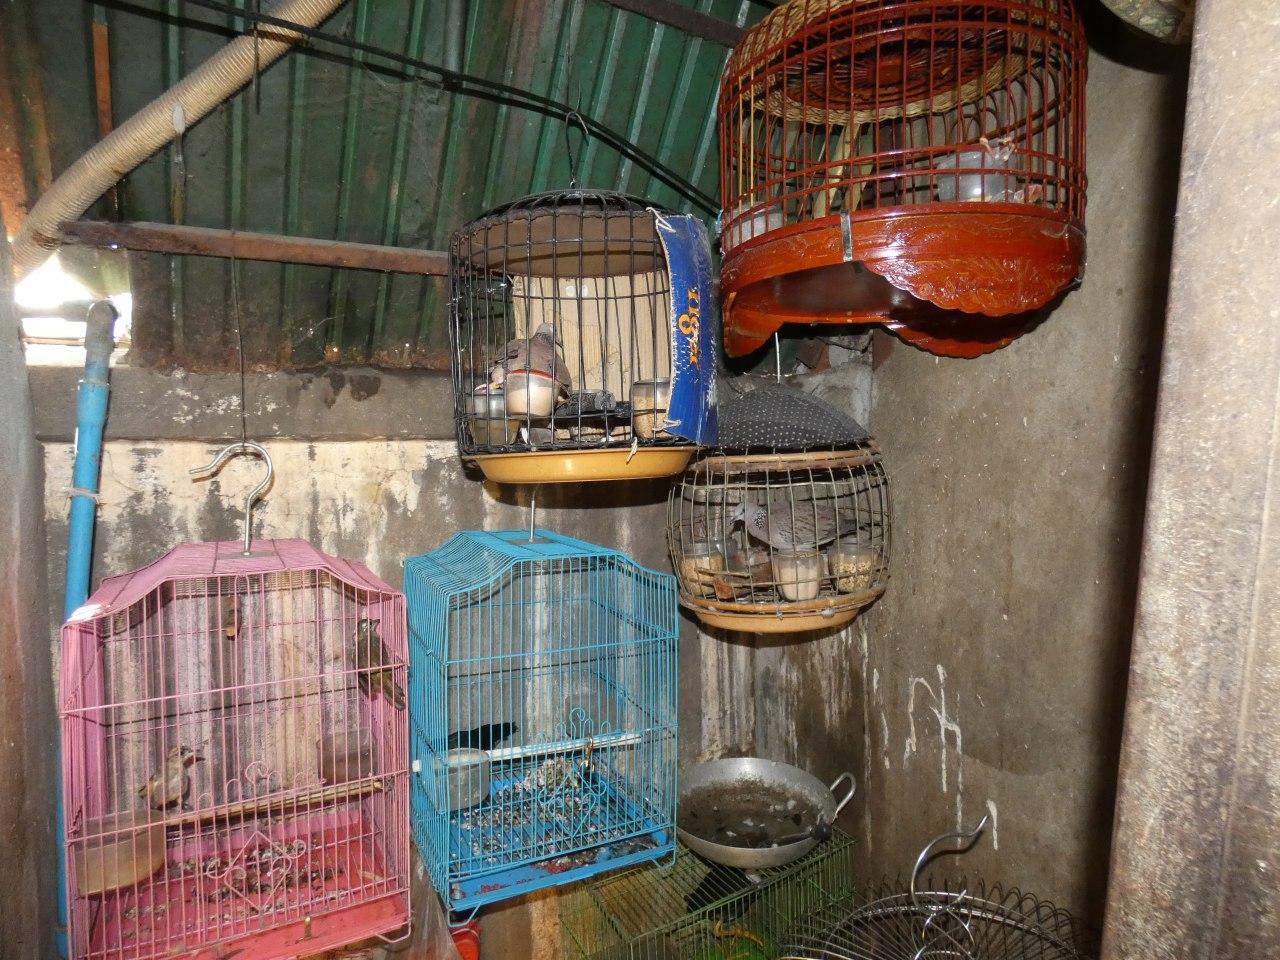 Birds in the illegal wildlife trade in Southeast Asia